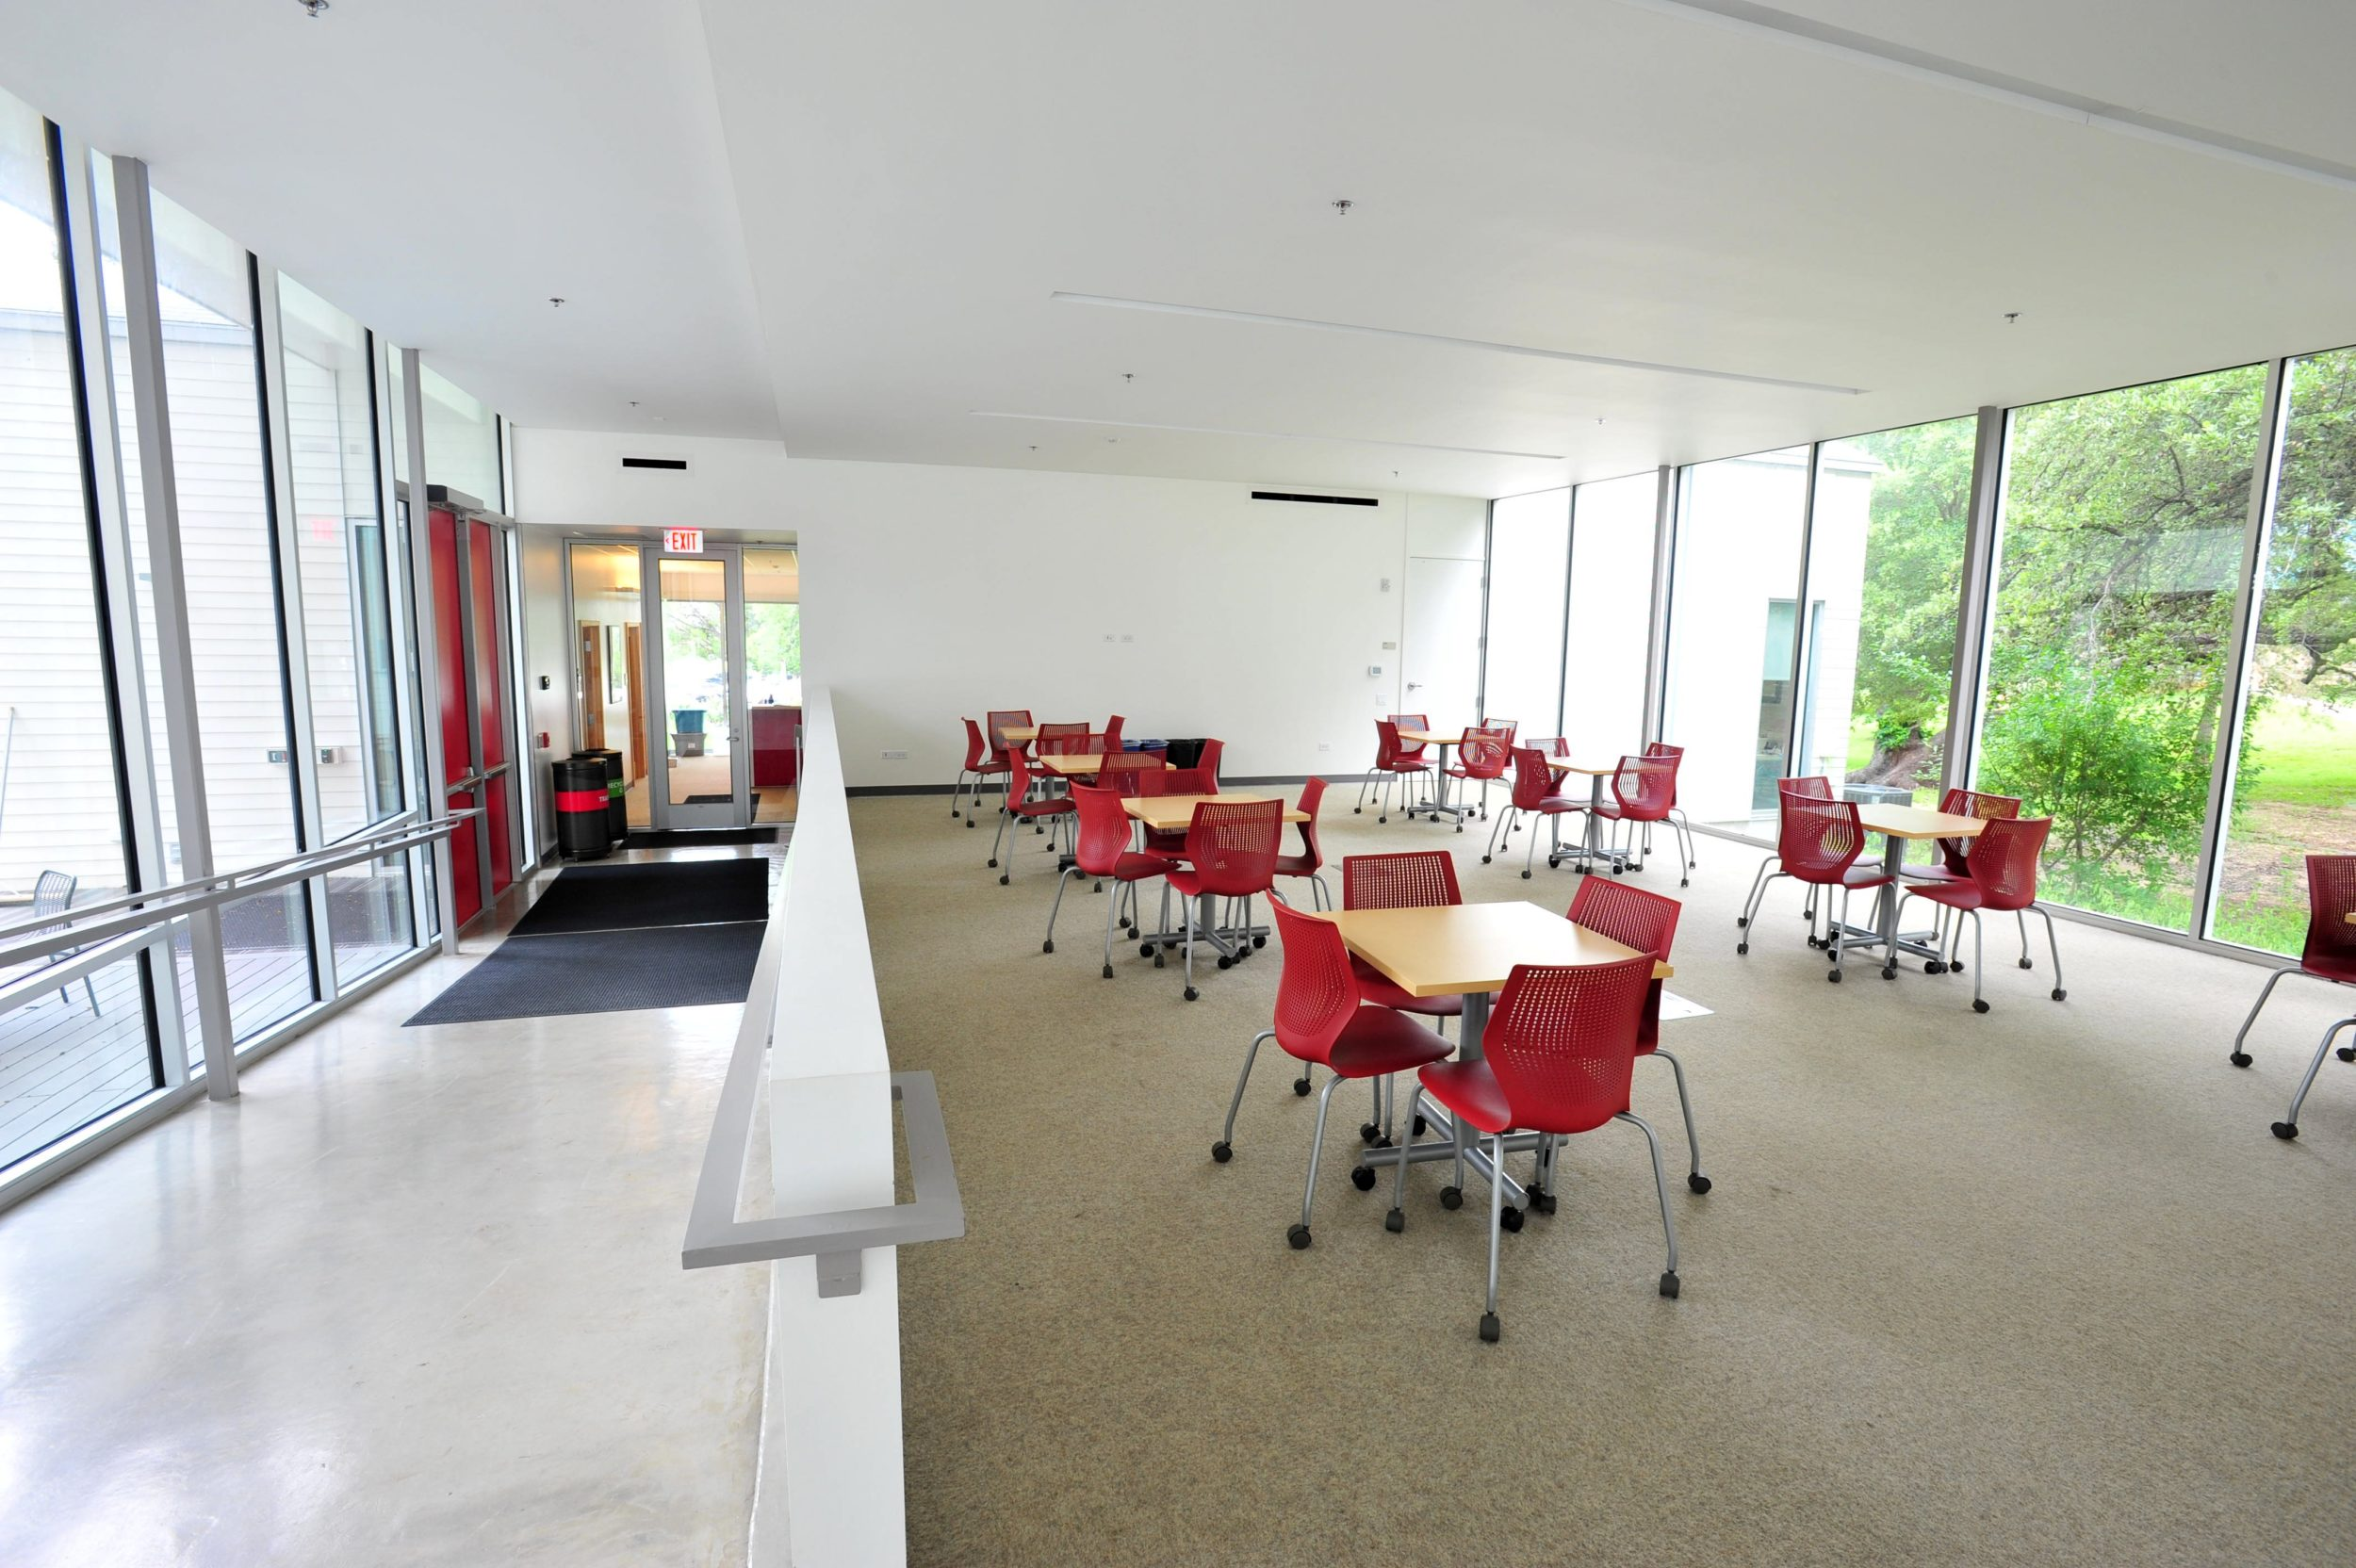 Image of the St. Edward's University Chapel Renovation Common Area including tables, chairs and hallway